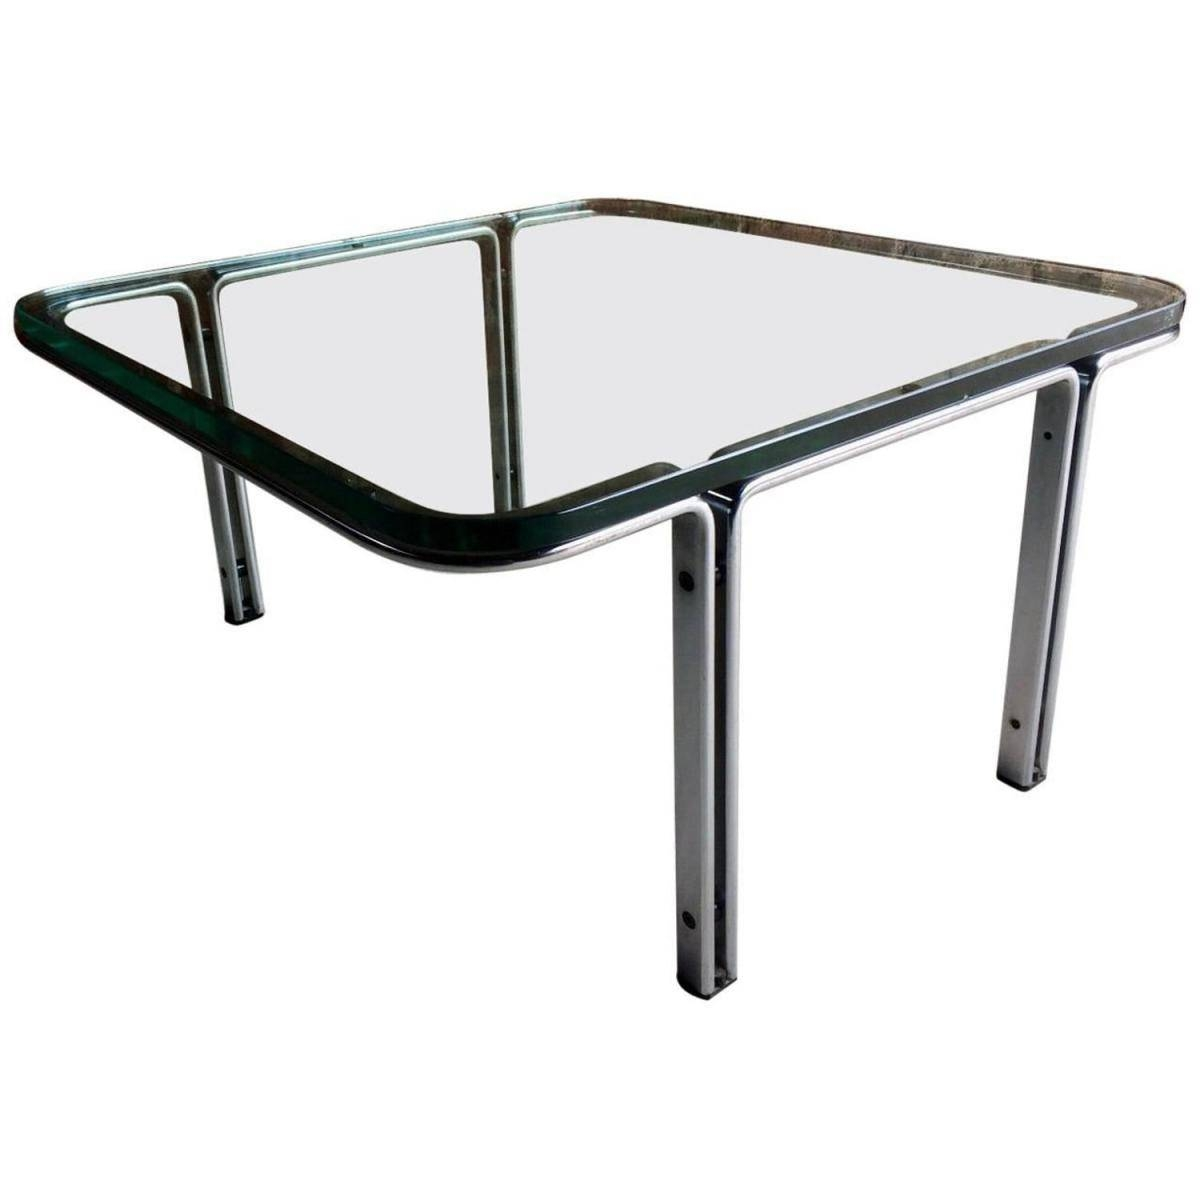 Model T111 Square Steel & Glass Coffee Tablehorst Brüning For Intended For Steel And Glass Coffee Tables (View 19 of 30)